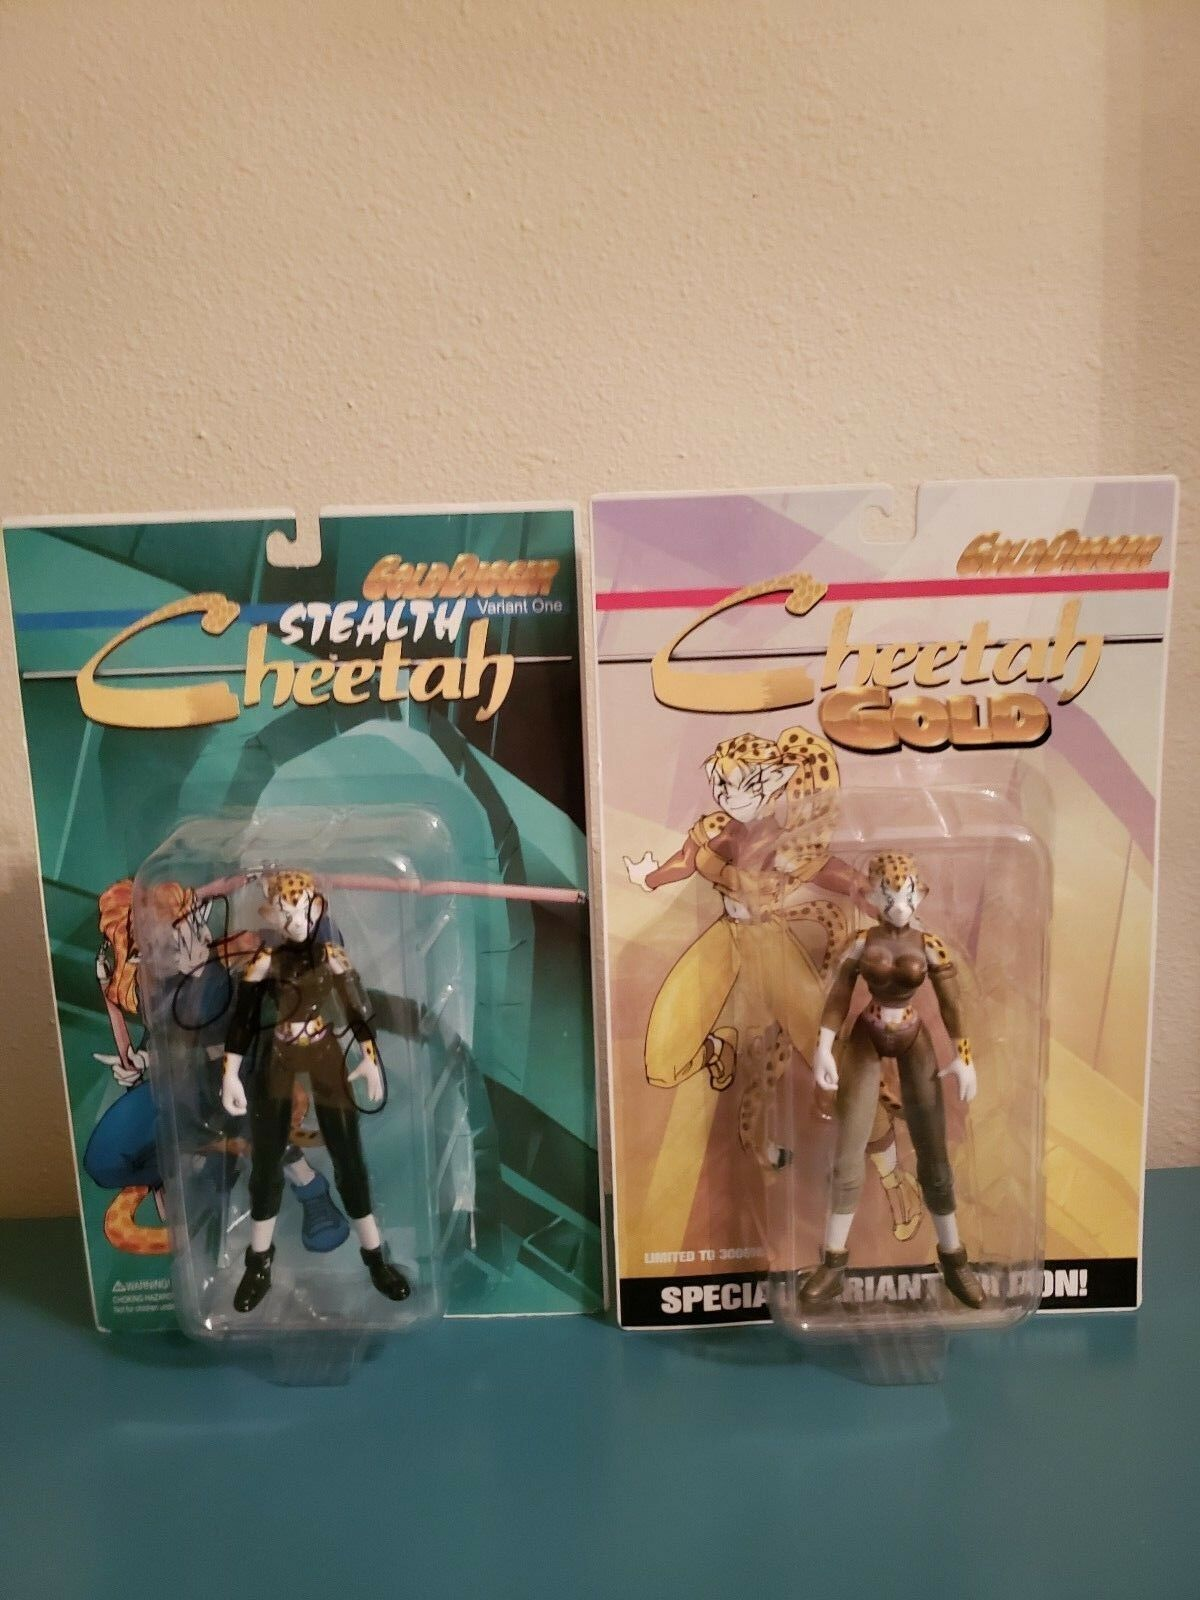 Gold Digger Digger Digger Stealth Cheetah Variant One & Cheetah Gold  FROT Perry Autograghed f1c209